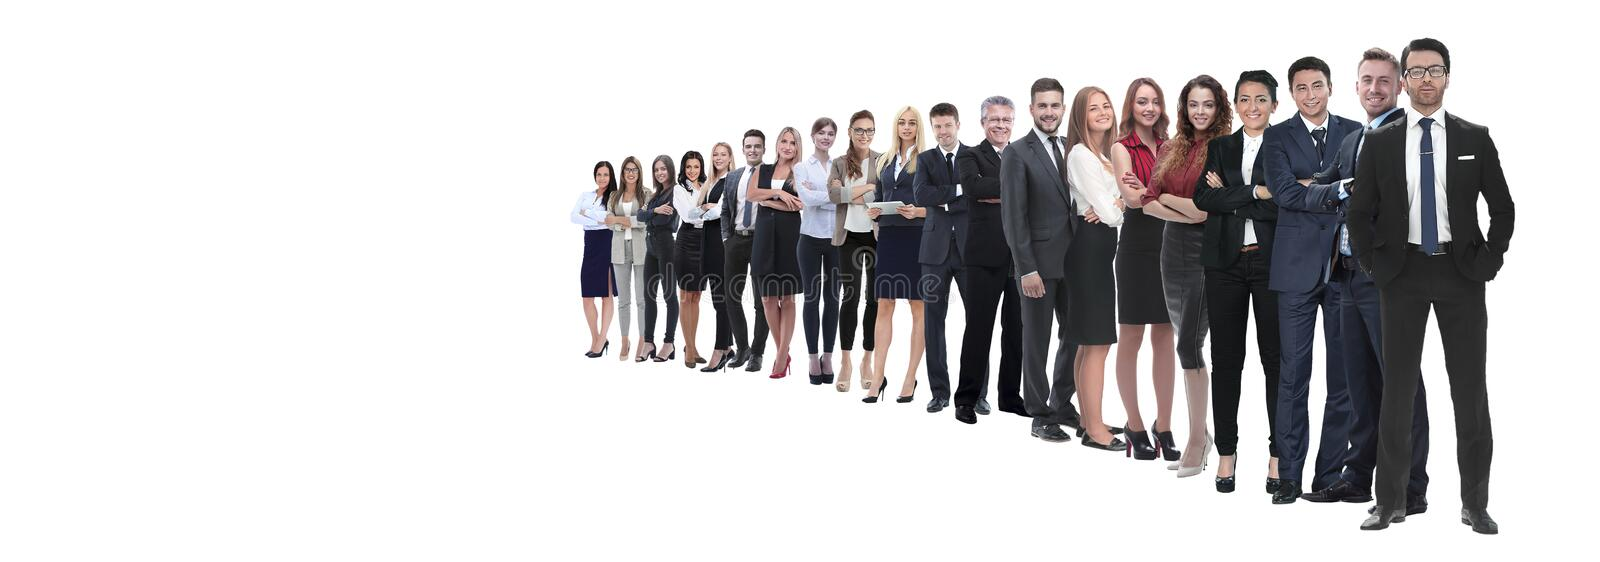 Template with a crowd of business people stock photography